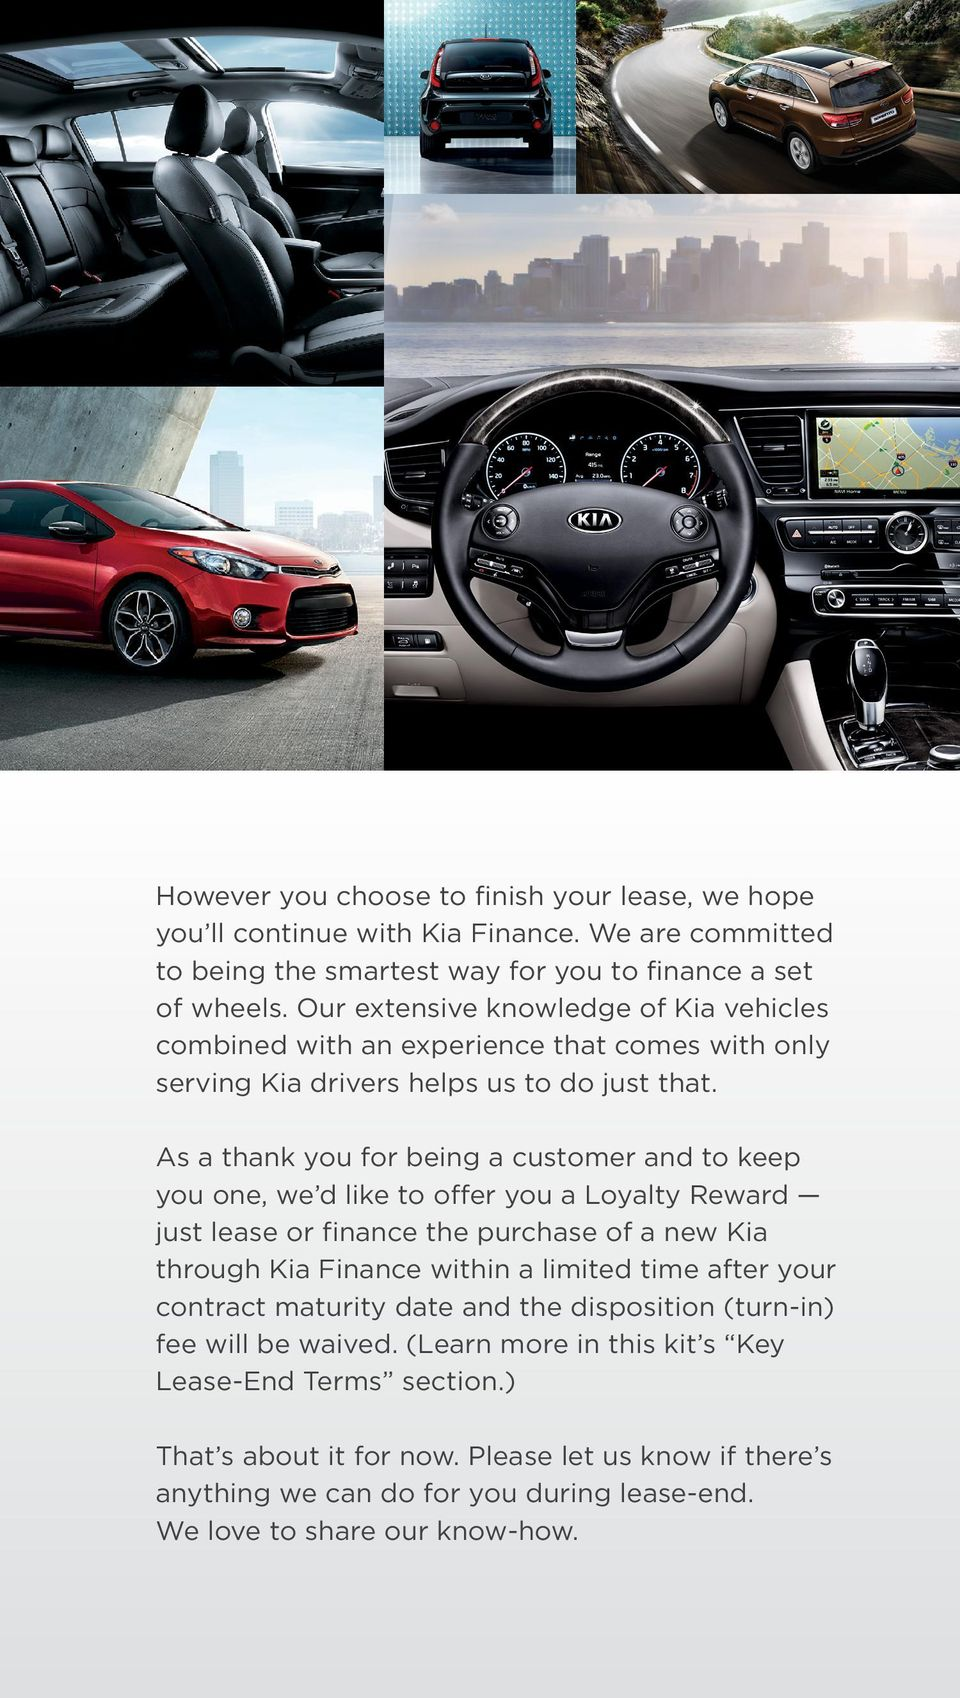 As a thank you for being a customer and to keep you one, we d like to offer you a Loyalty Reward just lease or finance the purchase of a new Kia through Kia Finance within a limited time